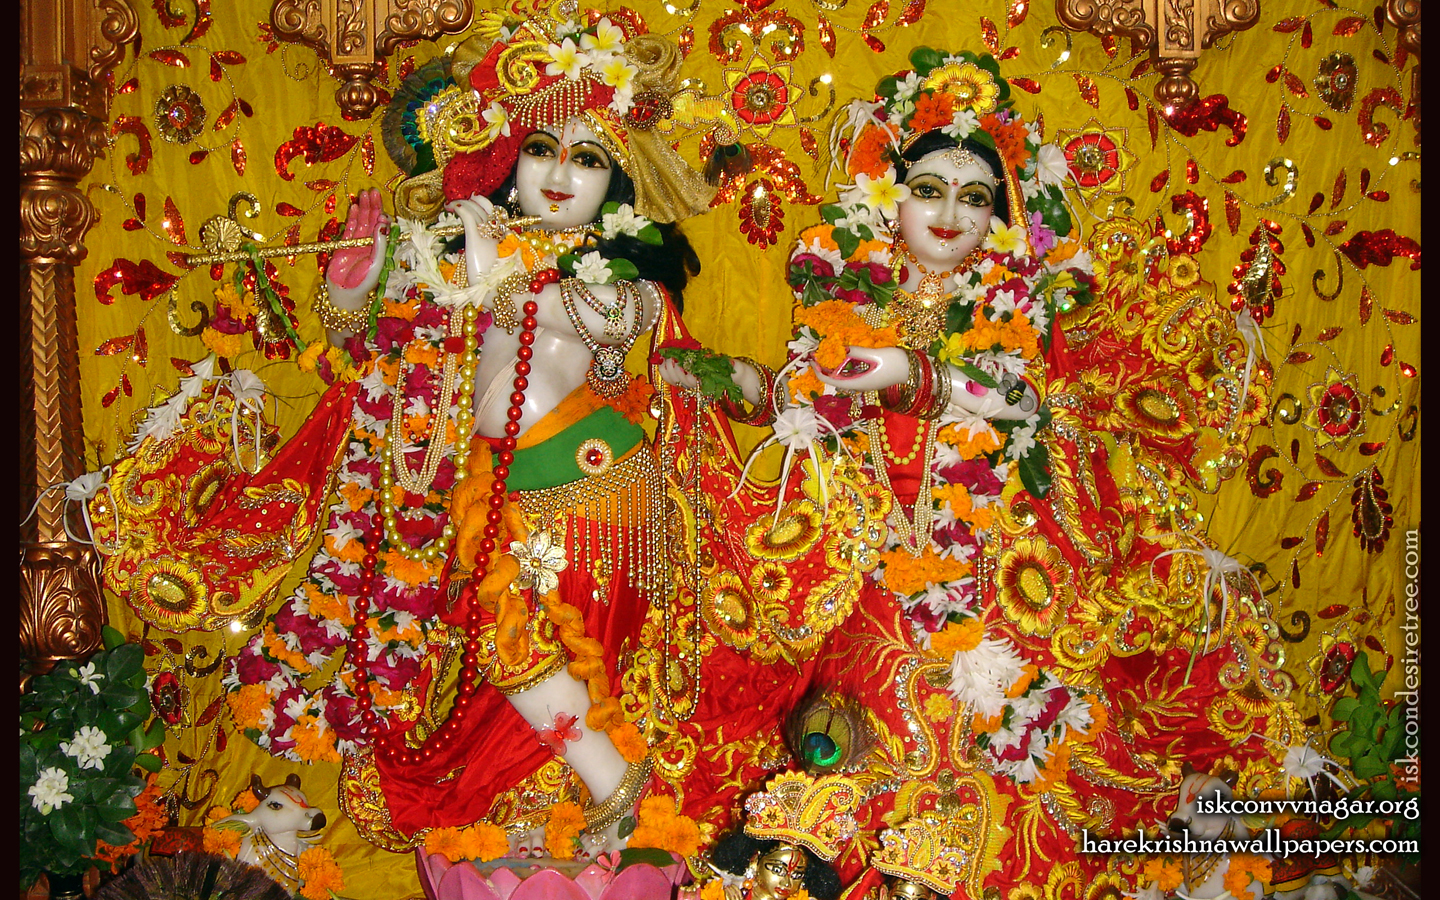 Sri Sri Radha Giridhari Wallpaper (024) Size 1440x900 Download